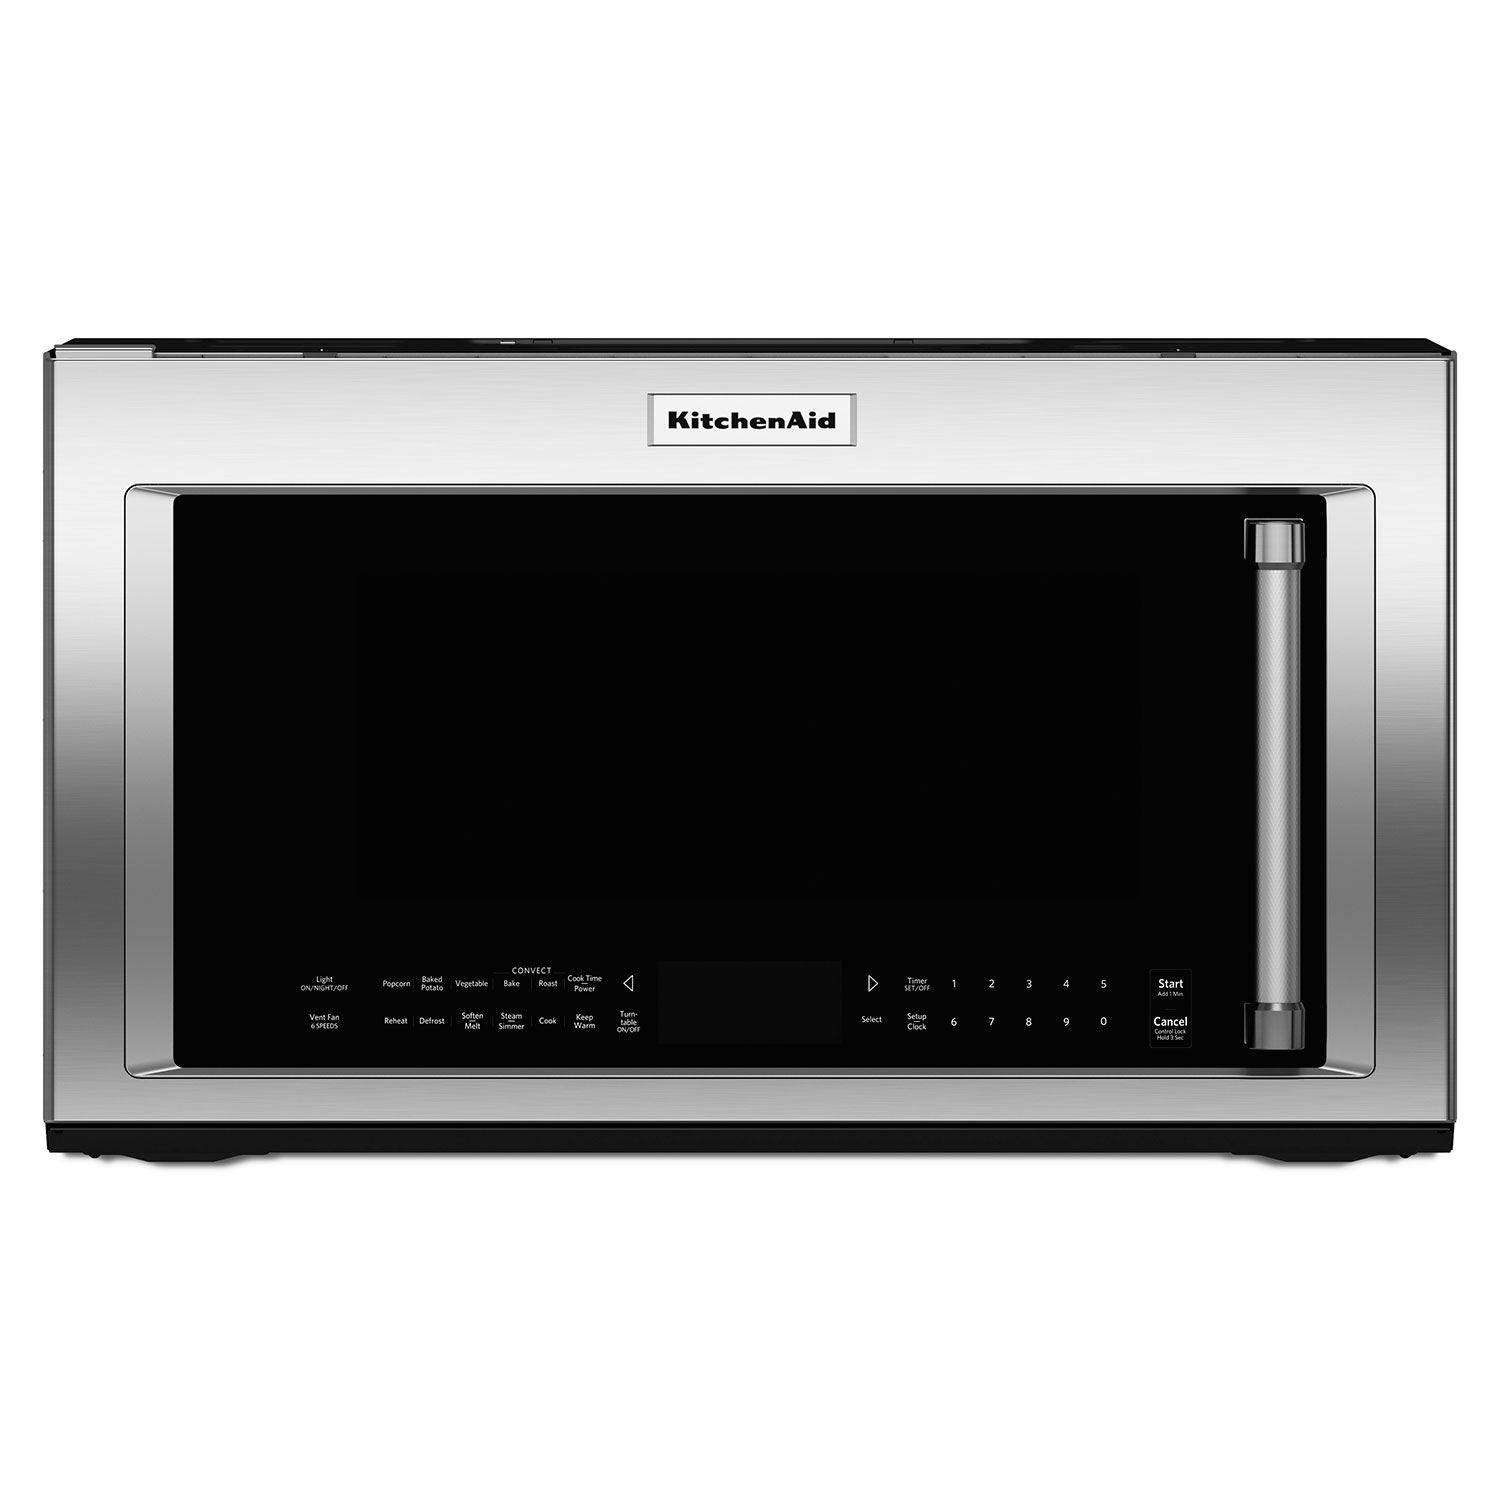 """KitchenAid Over-the-Range Microwave - 1.9 Cu. Ft. - Stainless Steel on red microwave, sanyo microwave, emerson microwave, tappan microwave, amana microwave, ge microwave, modern microwave, stainless steel microwave, kitchenaid cooktop, kitchenaid dishwasher, 24"""" wide microwave, maytag microwave, frigidaire microwave, microwave parts, sharp microwave, over-the-range microwave, built in microwave, kitchenaid stand mixer, hotpoint microwave, kitchenaid refrigerator, panasonic microwave, bosch microwave, kitchenaid attachments, goldstar microwave, kitchenaid parts, kenmore microwave, kitchenaid mixer, cuisinart microwave, whirlpool microwave, electrolux microwave, lg microwave, samsung microwave, magic chef microwave,"""